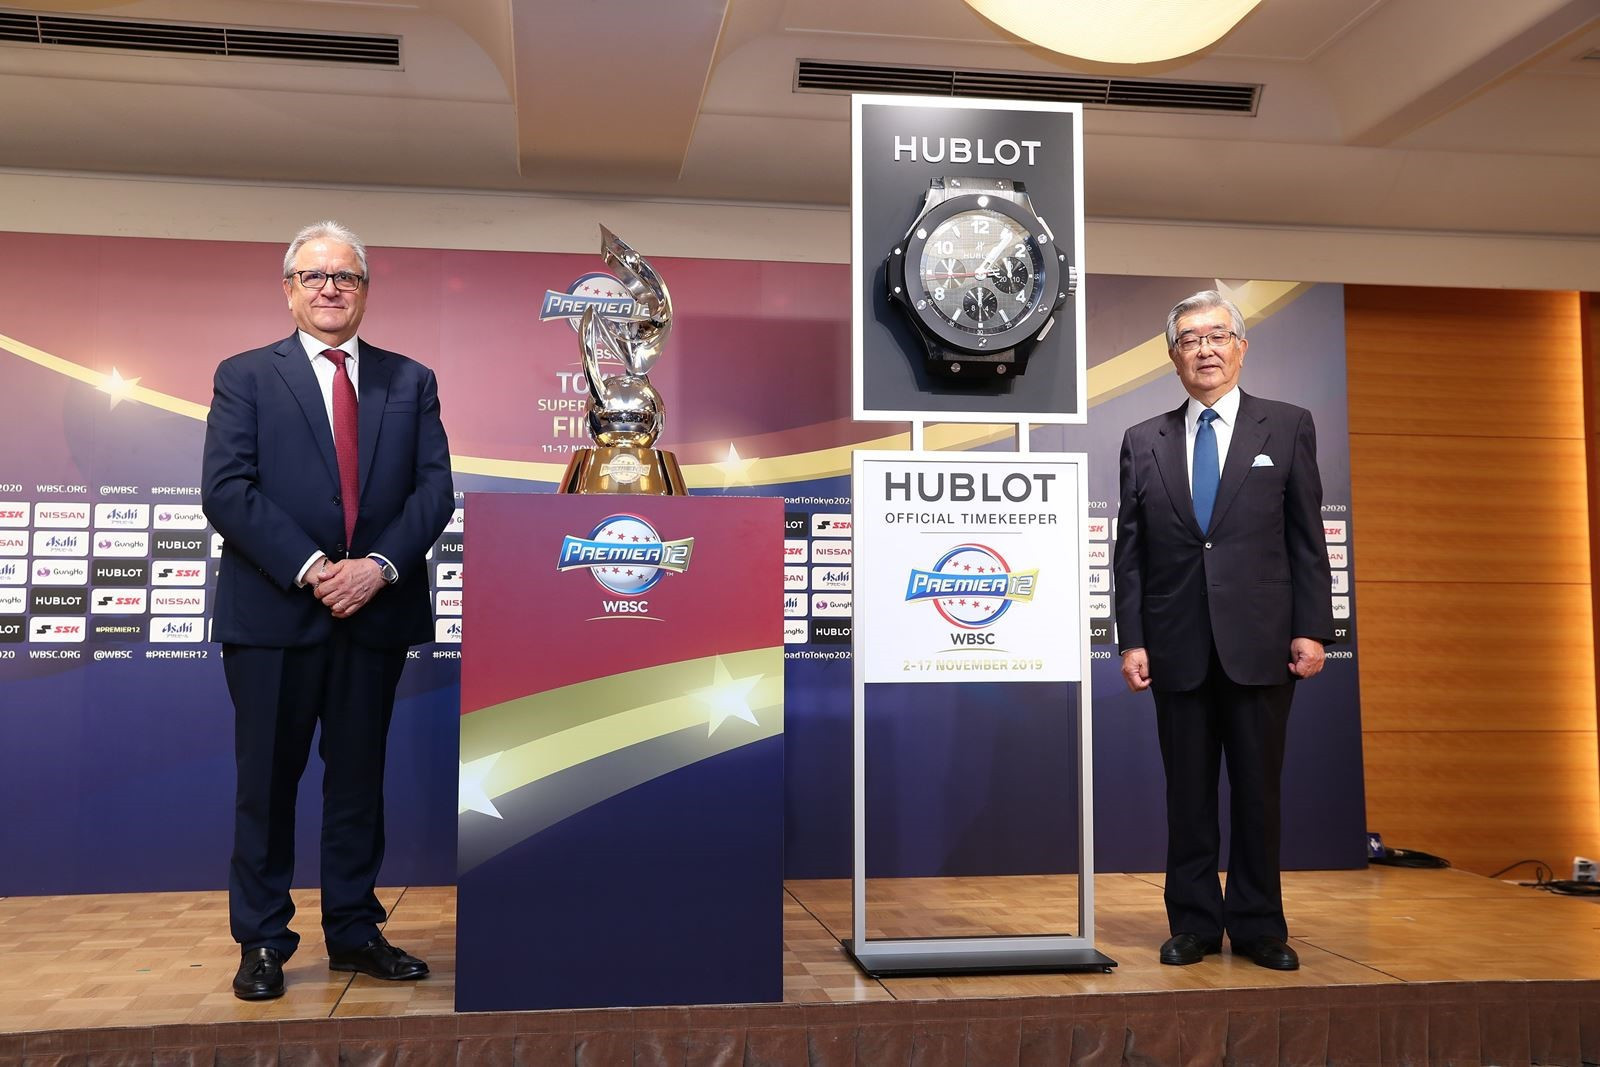 New WBSC Premier12 sponsors revealed as part of series of announcements